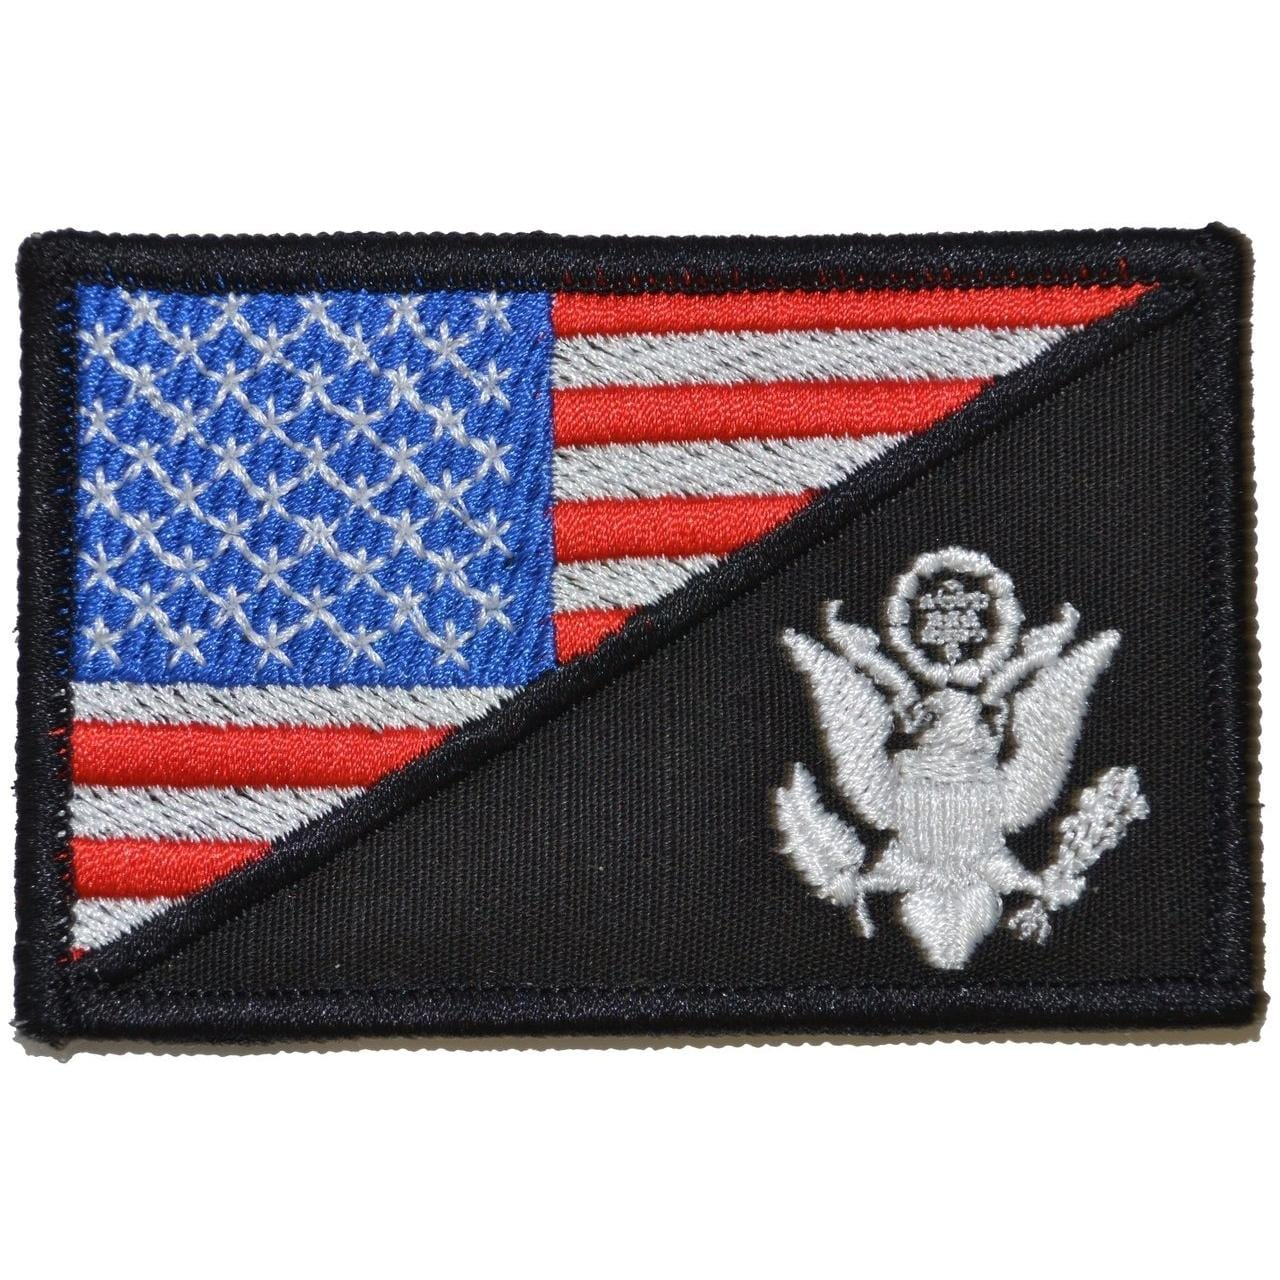 Tactical Gear Junkie Patches Full Color US Army Crest USA Flag - 2.25x3.5 Patch